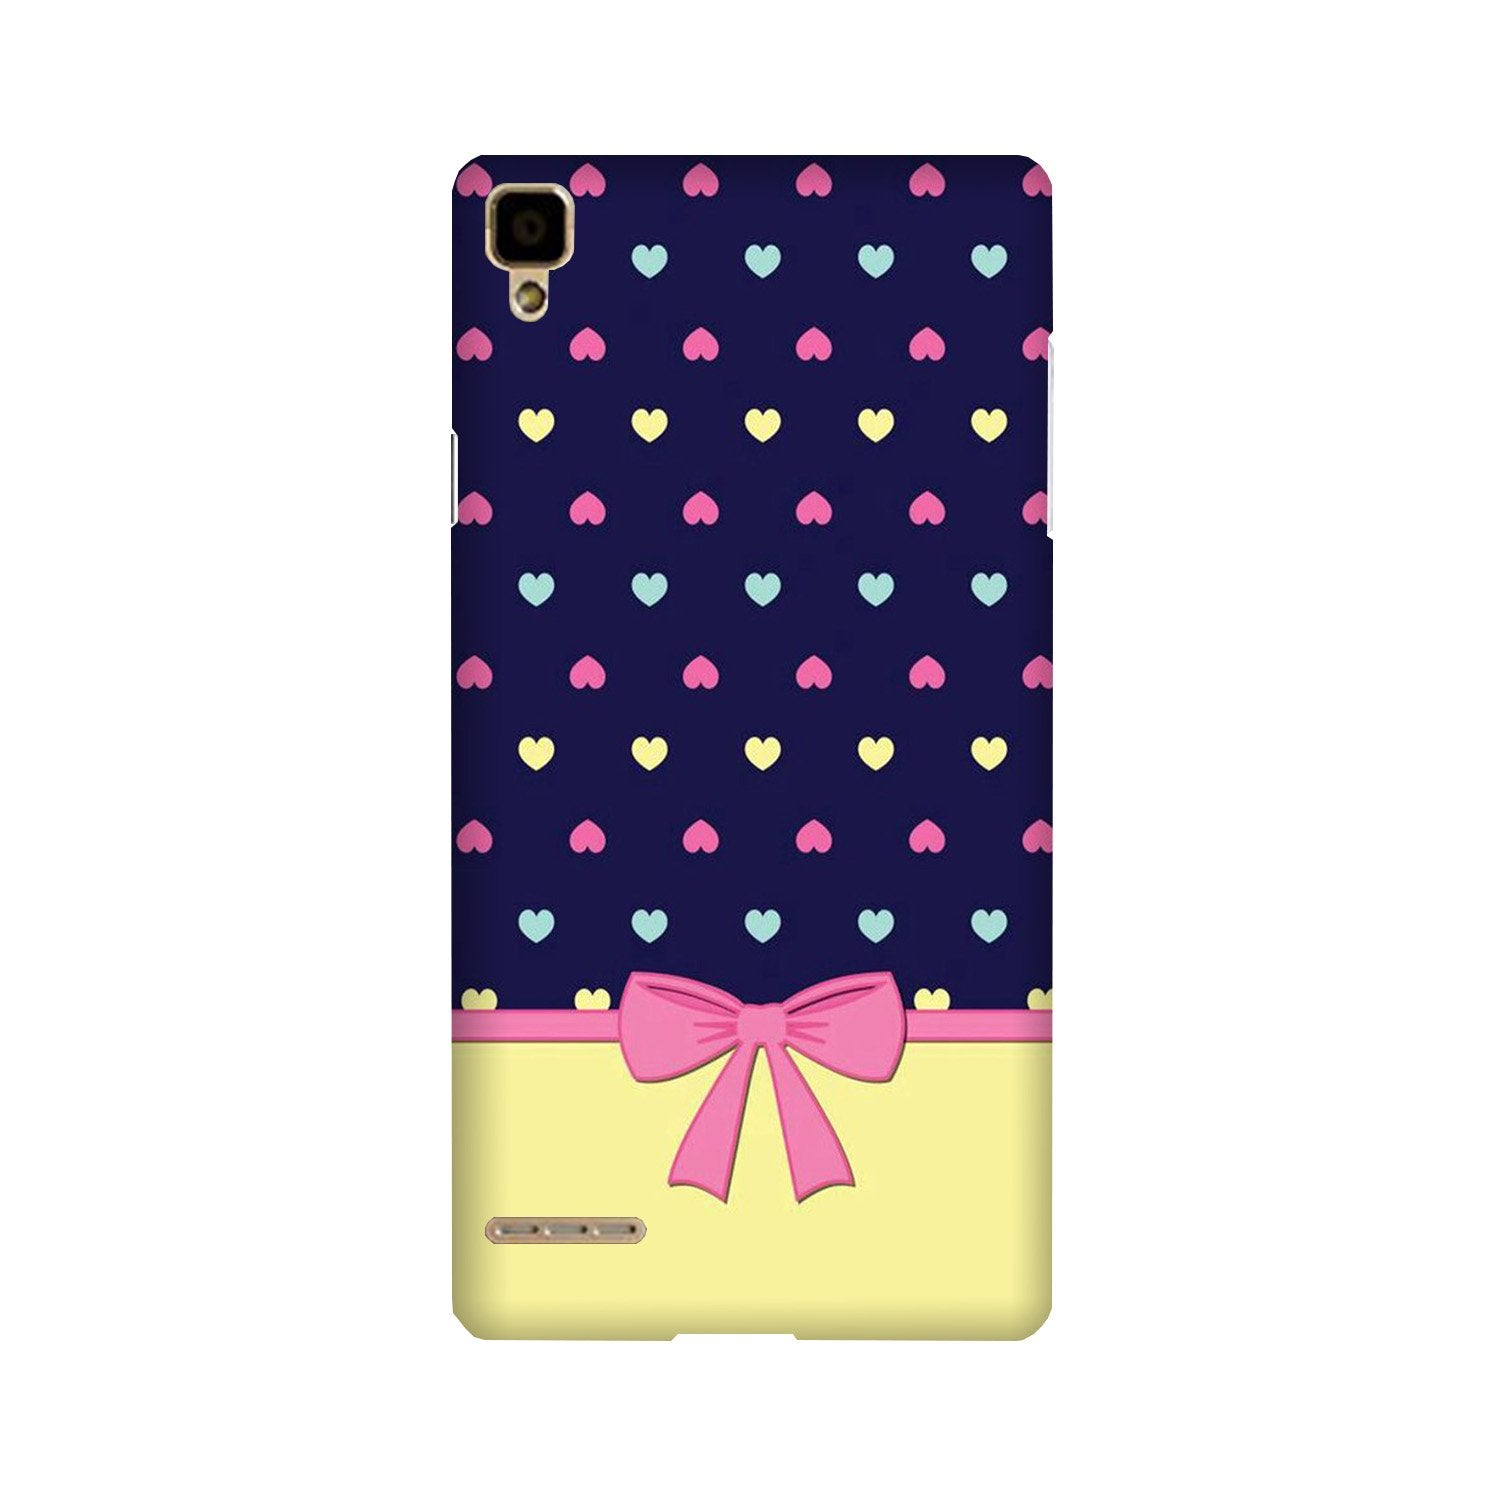 Gift Wrap5 Case for Oppo F1